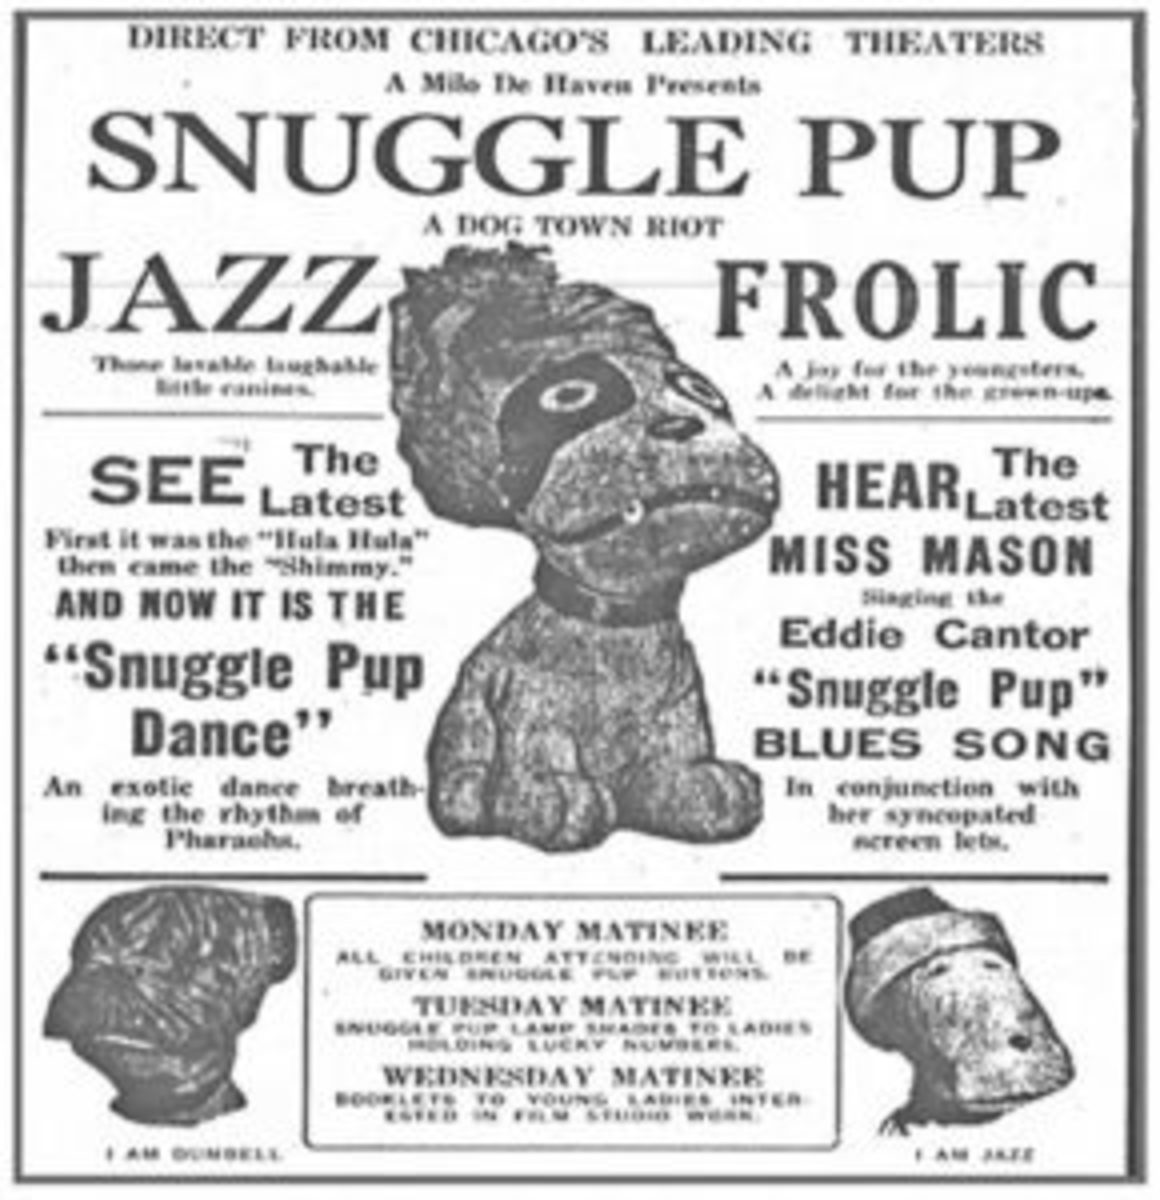 The Snuggle Pup craze included many jazz frolics and special dances, along with special songs like the one written by actor and musician Eddie Cantor. Image courtesy of newspapers.com